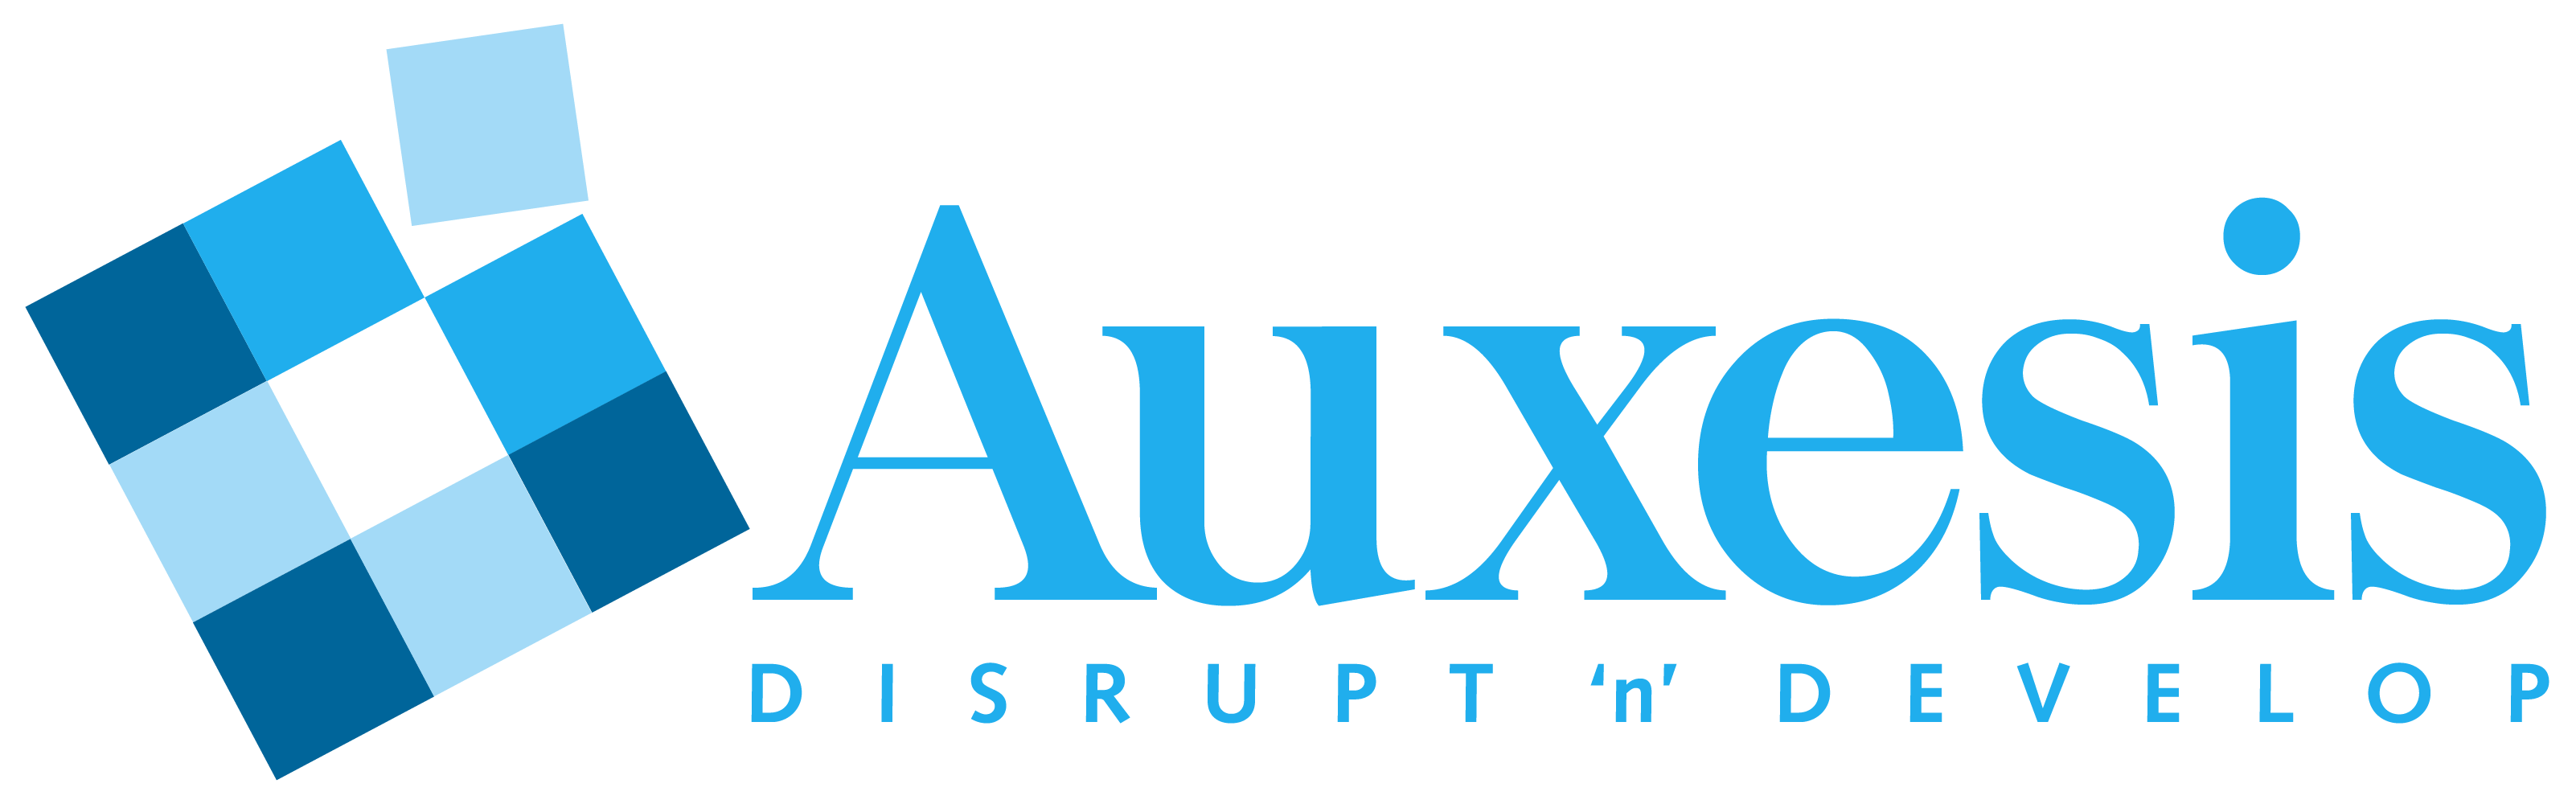 Auxesis services & technologies private limited lucknow Job Openings